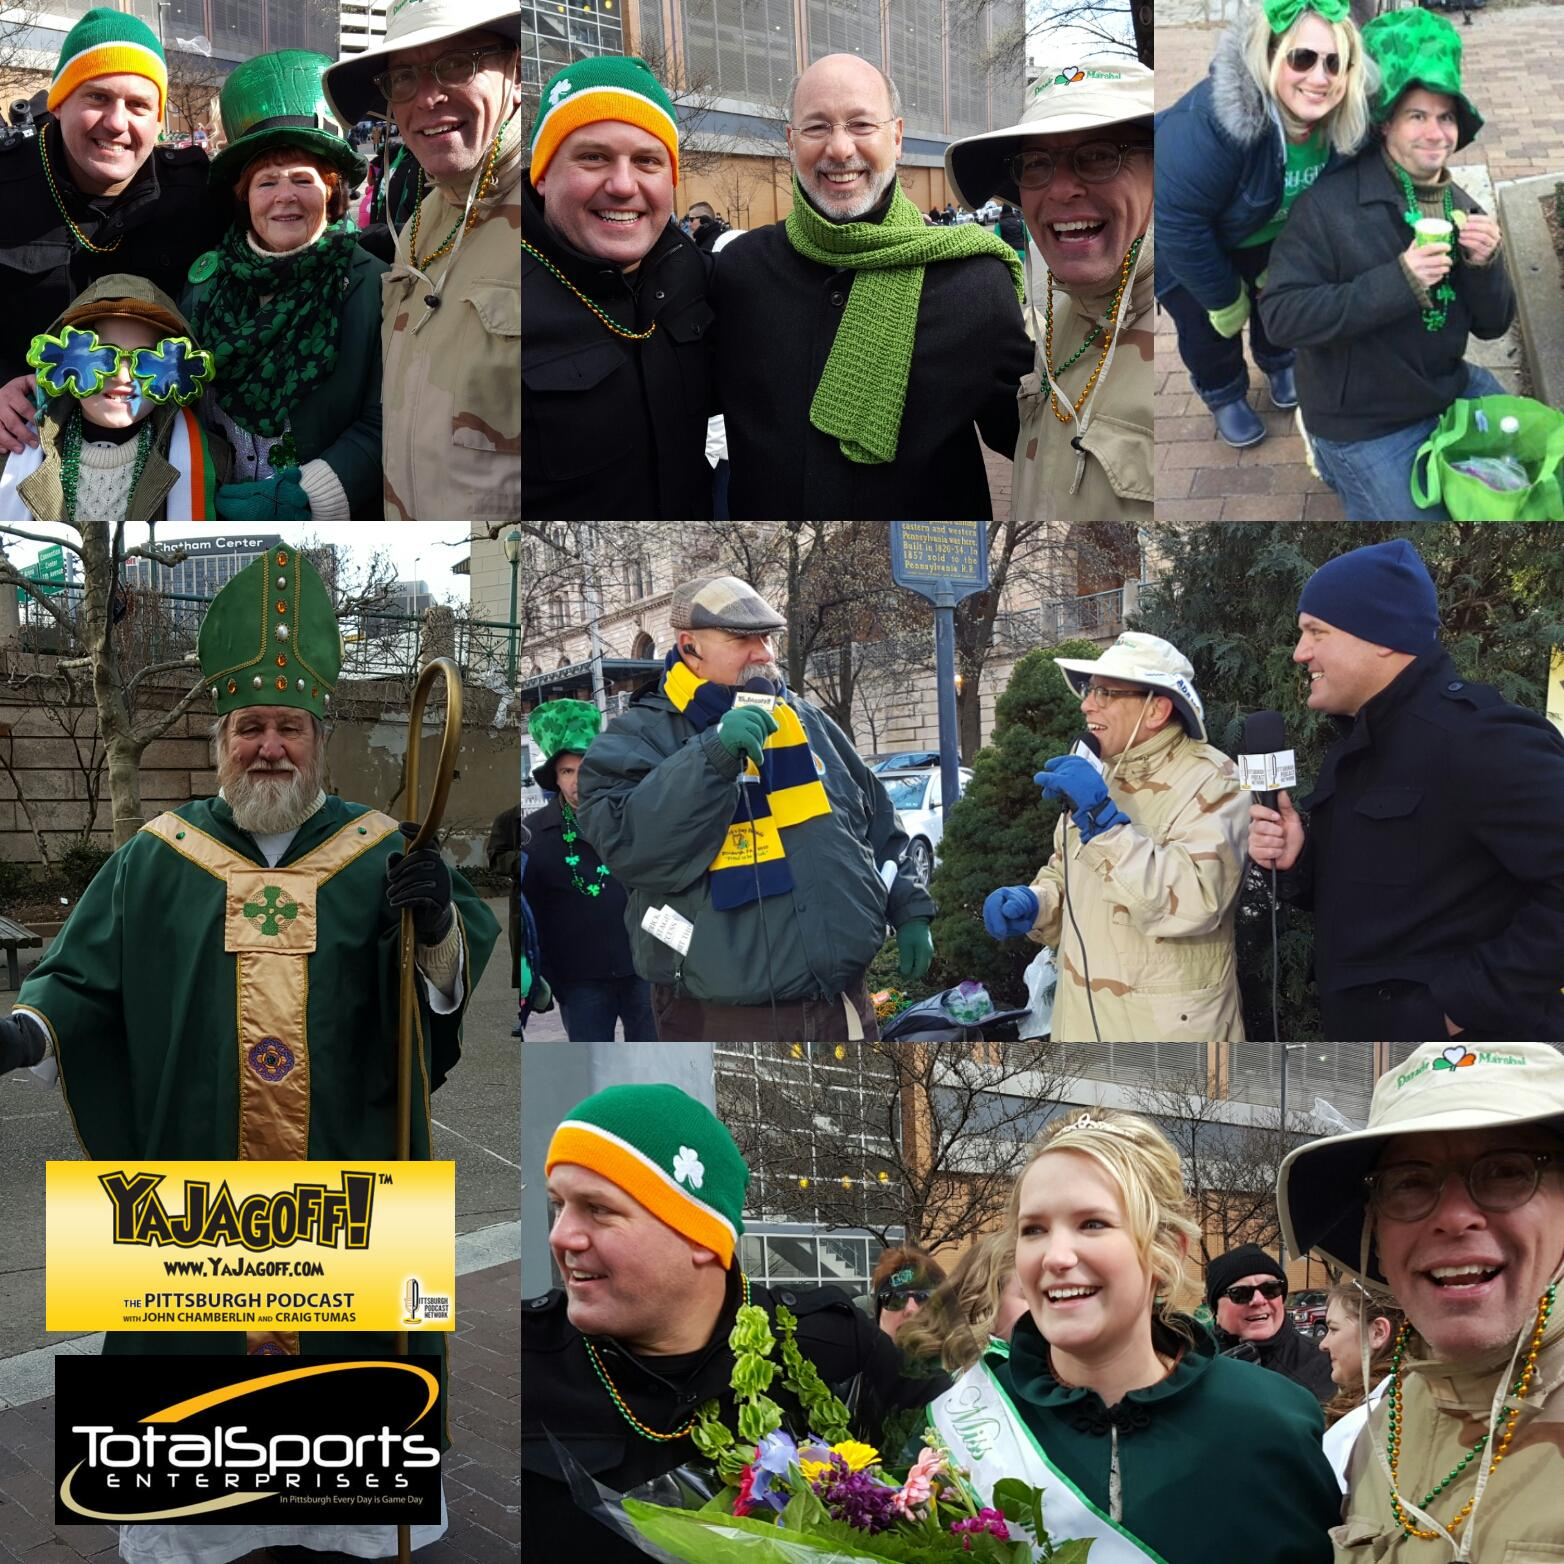 Ya Jagoff Yajagoff Podcast Episode 61 From The St Patrick S Day Parade